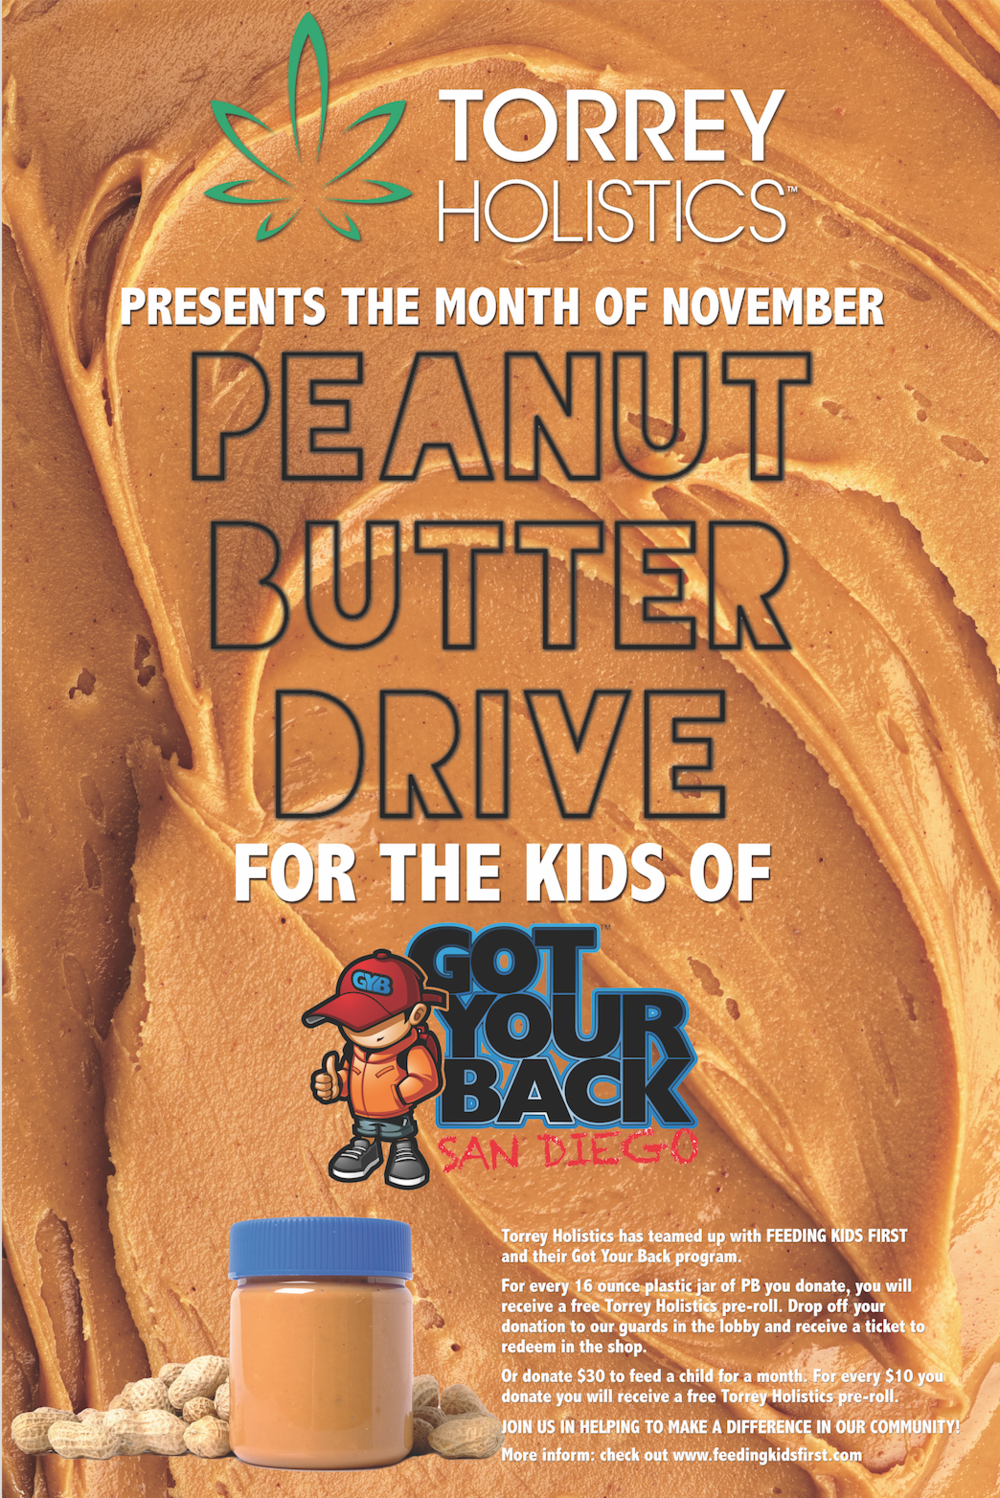 Peanut Butter DriveNovember 2017  - Torrey Holistics has teamed up withFEEDING KIDS FIRST and their Got Your Back program.For every 16 ounce plastic jar of PB you donate, you will receive a free Torrey Holistics pre-roll. Drop it off your donation to our guards in the lobby and receive a ticket to redeem in the shop.Or Donate $30 to feed and feed a child for a month. For every $10 you donate you will receive a free Torrey Holistics pre-roll.Join us in helping to make a difference in our community!More information check out www.feedingkidsfirst.com